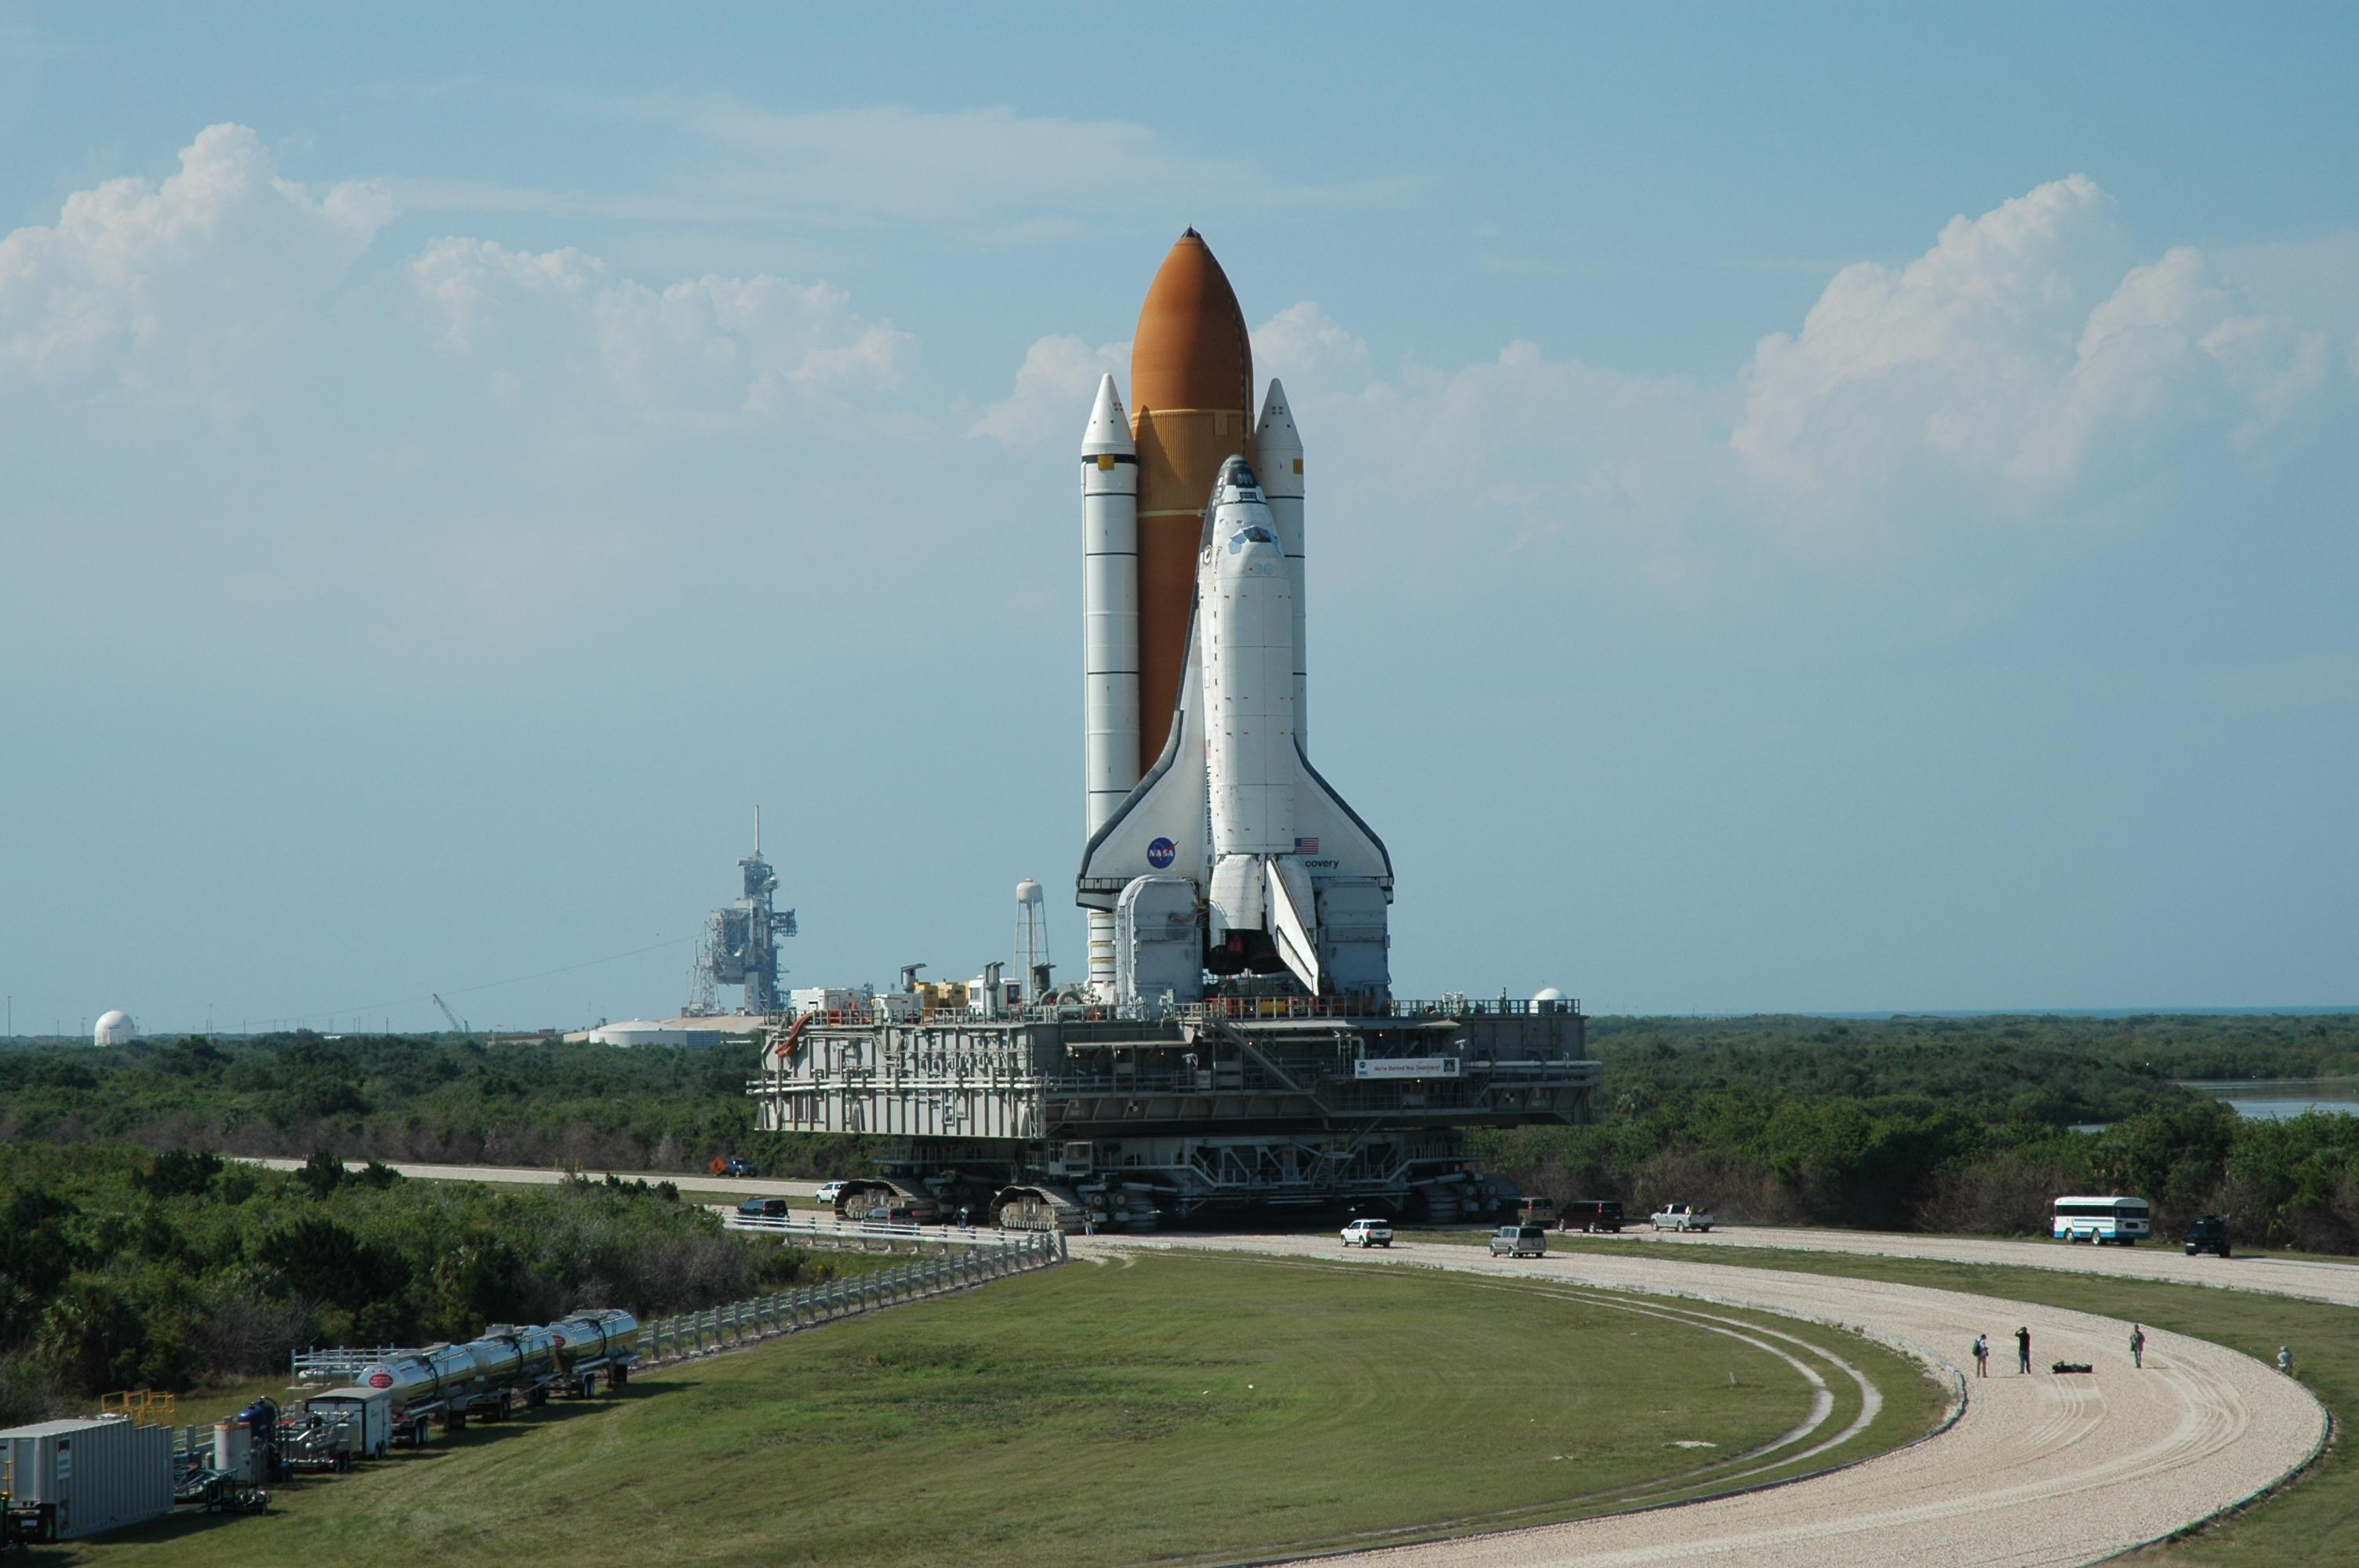 Space shuttle discovery hd wallpaper background image - 4k space shuttle ...